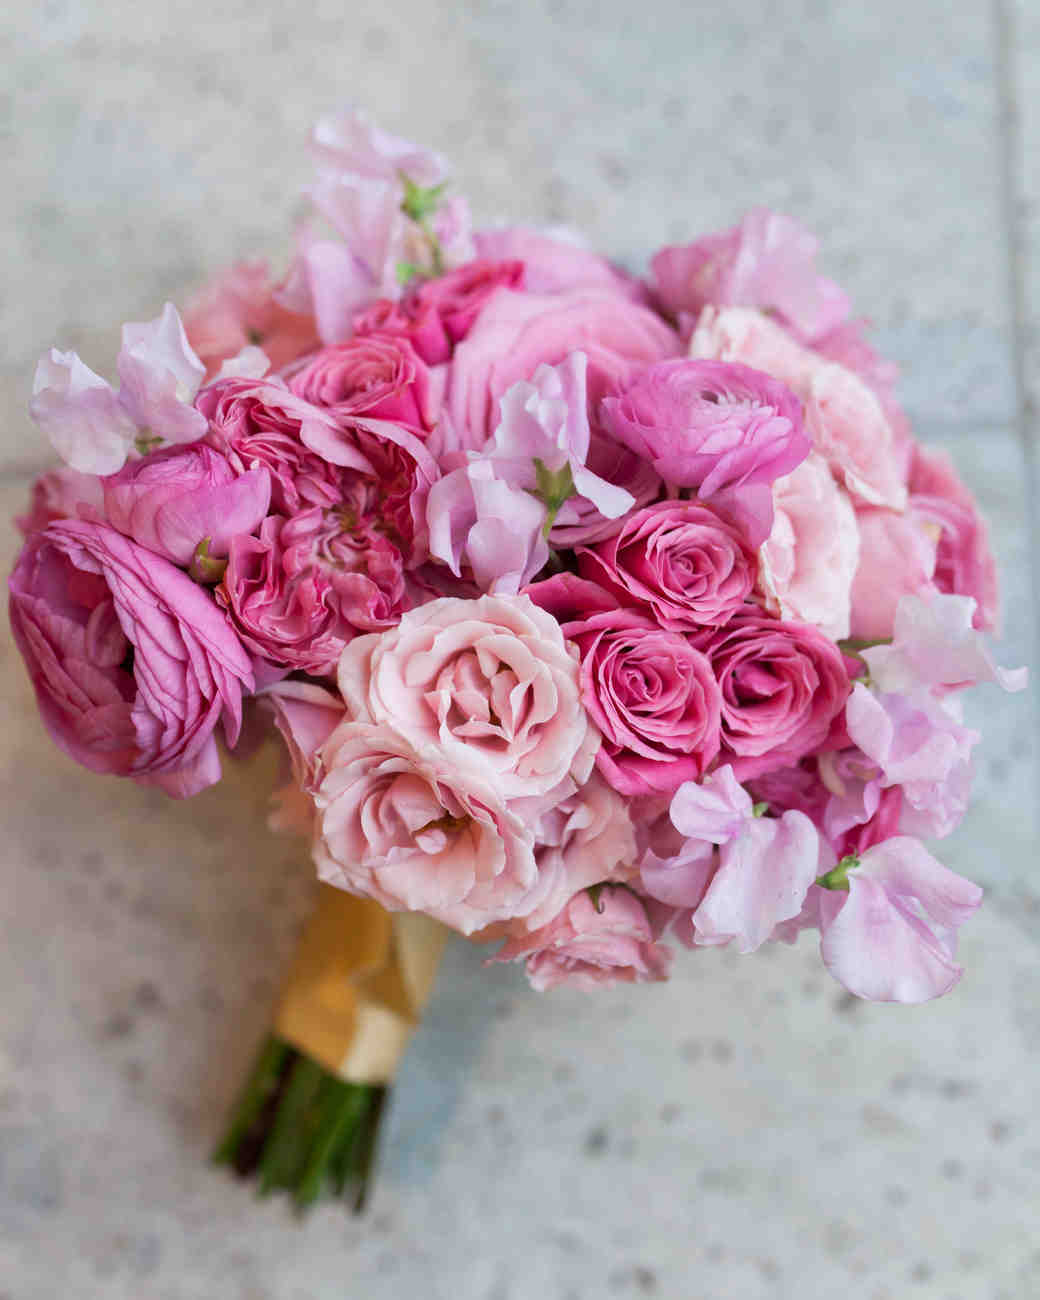 pink and white rose wedding bouquets photo - 1